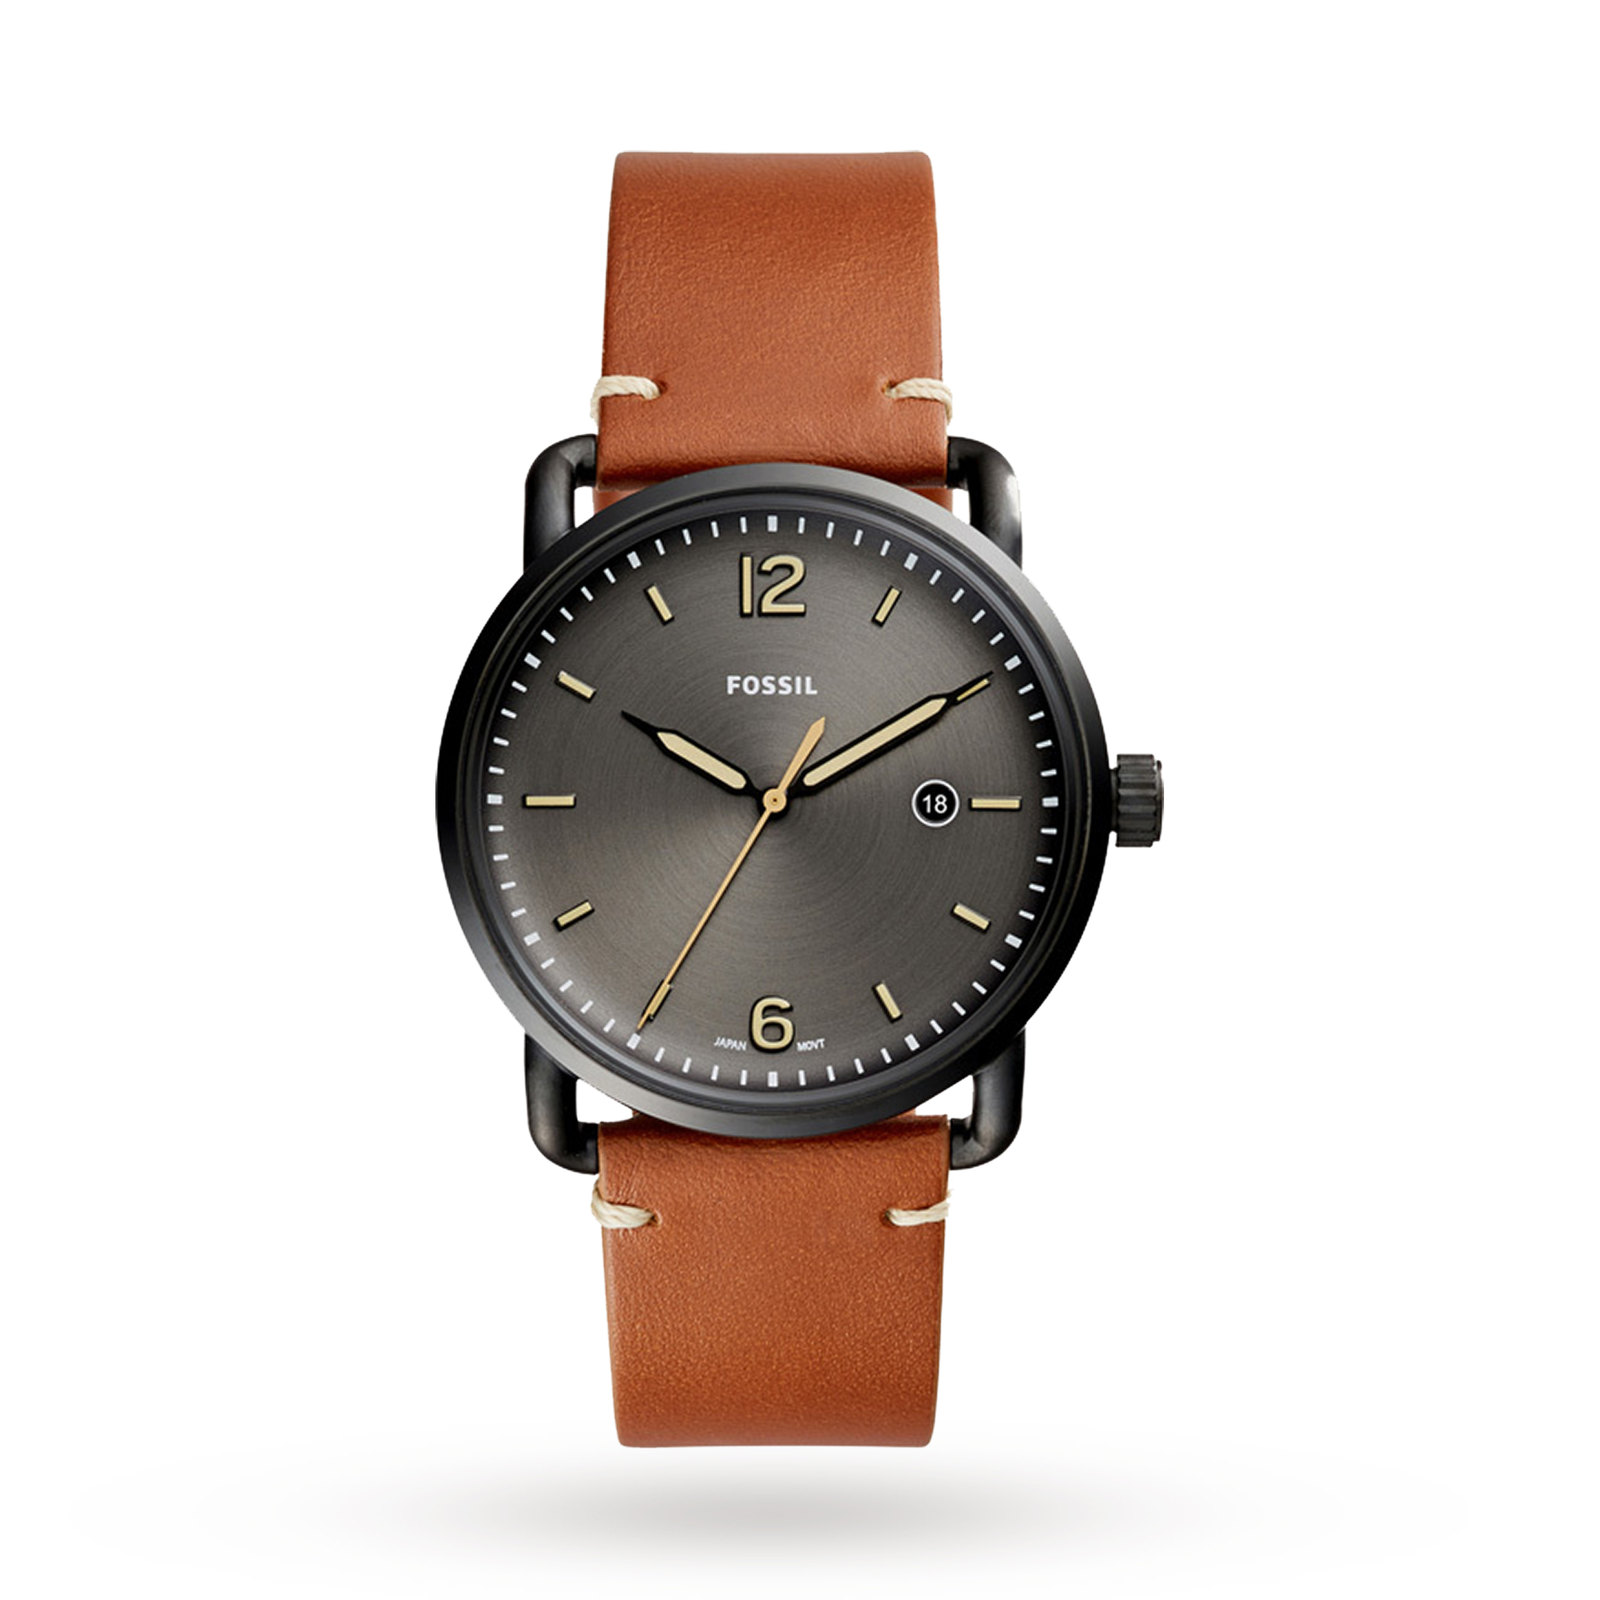 Fossil The Commuter Three-Hand Date Luggage Leather Watch